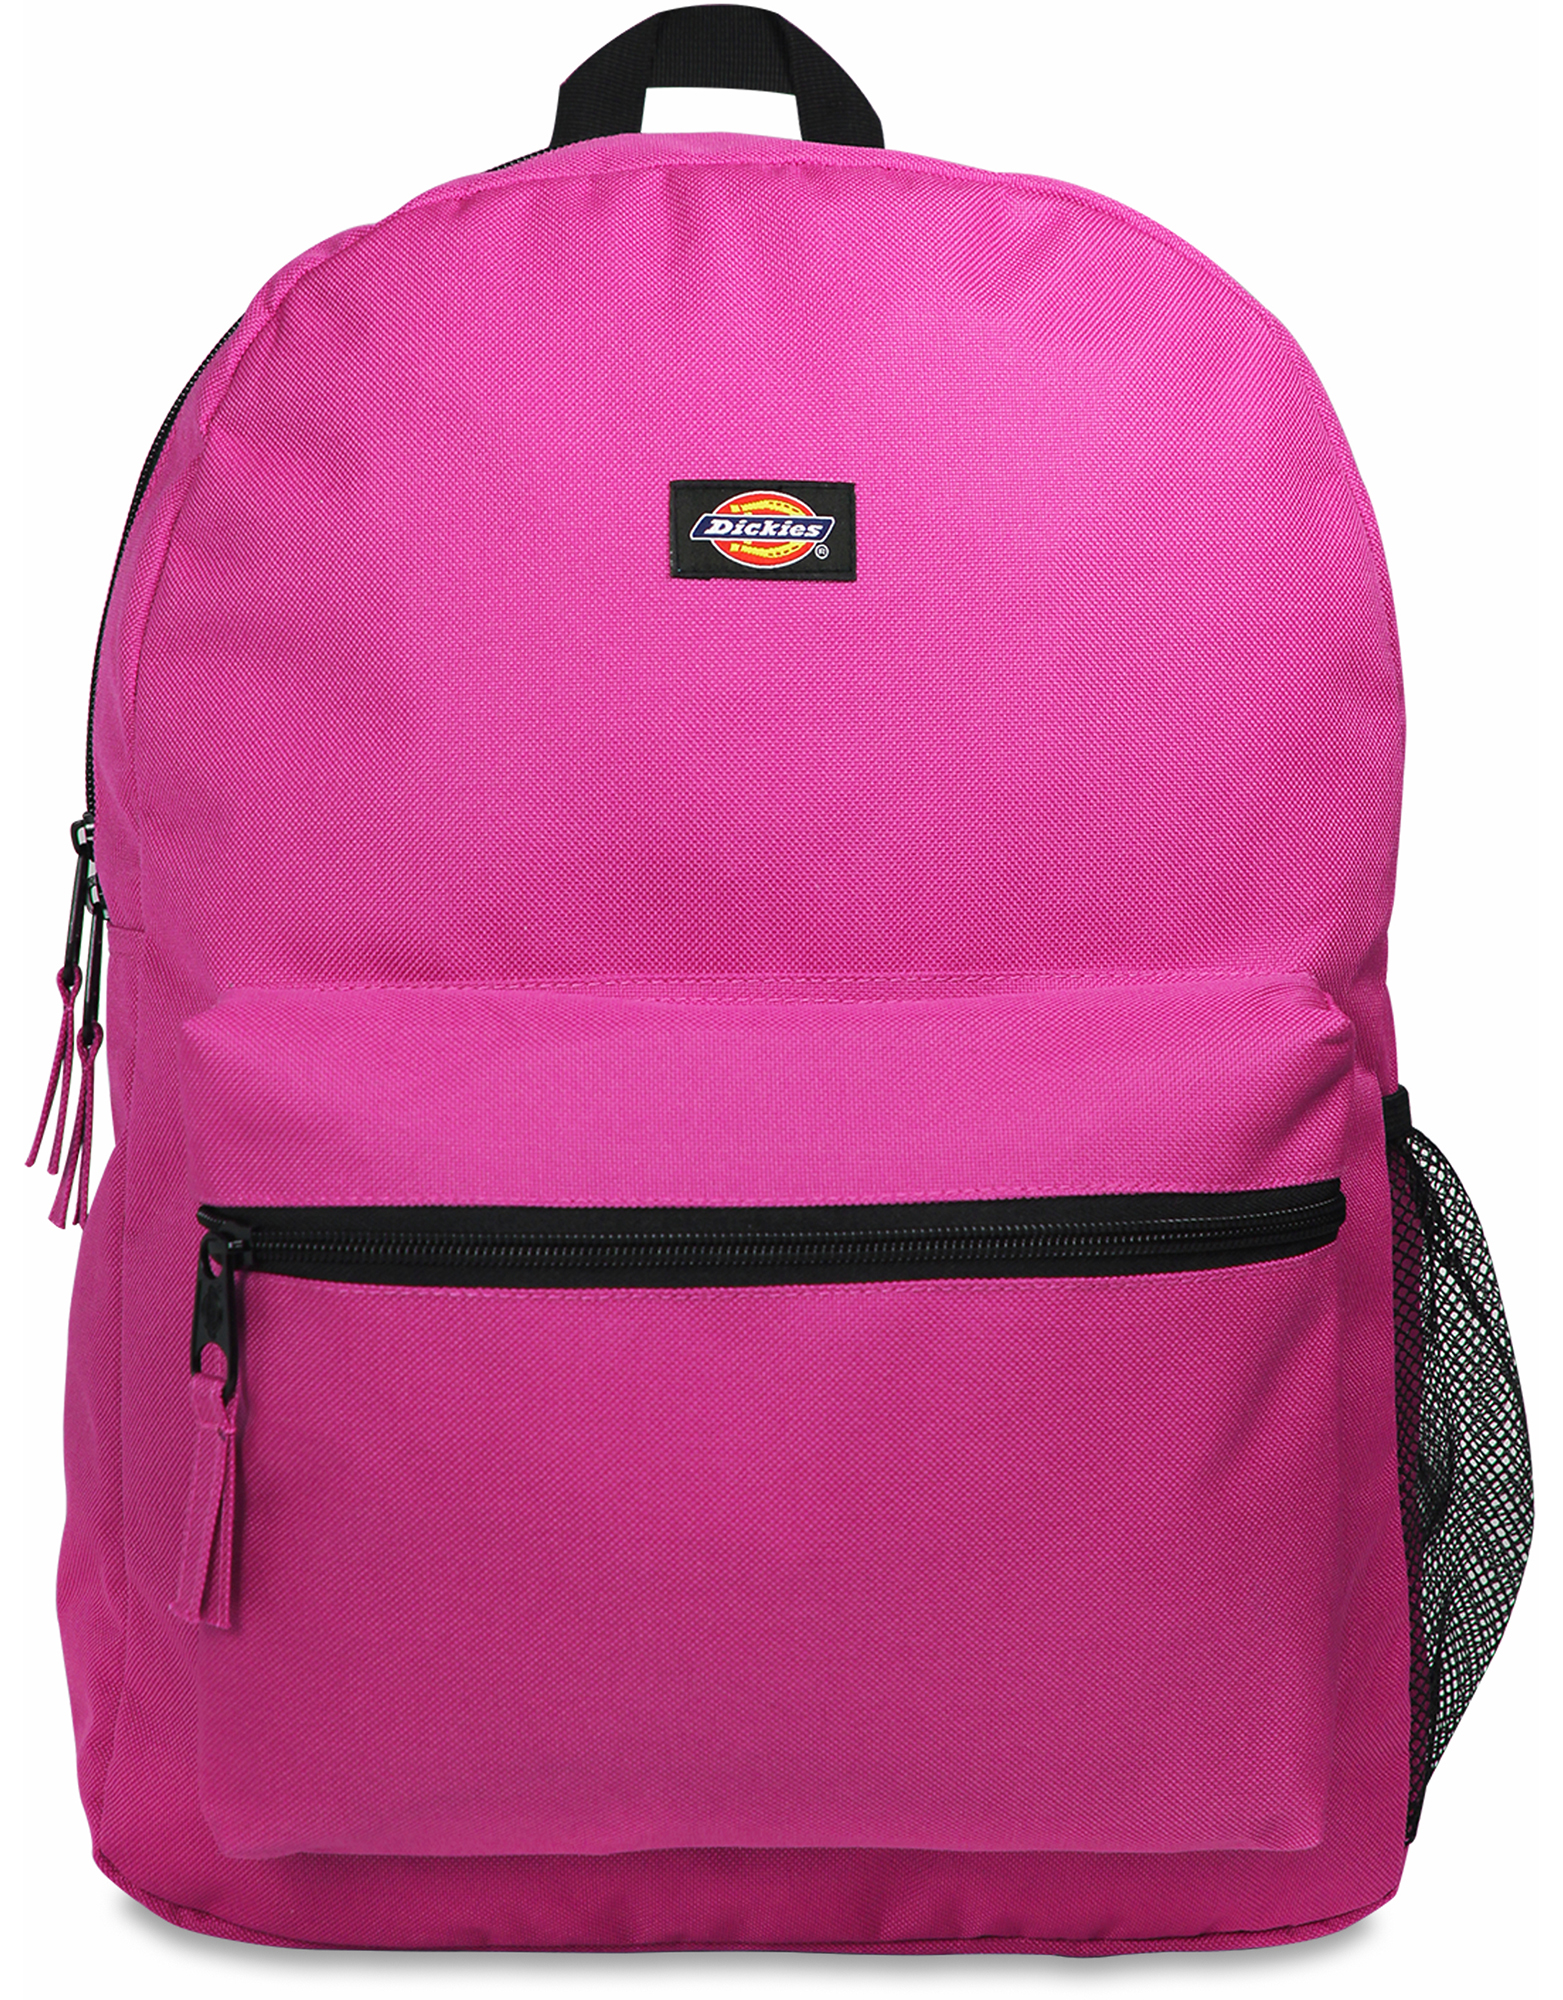 Student Backpack - Shocking Pink (SHW)